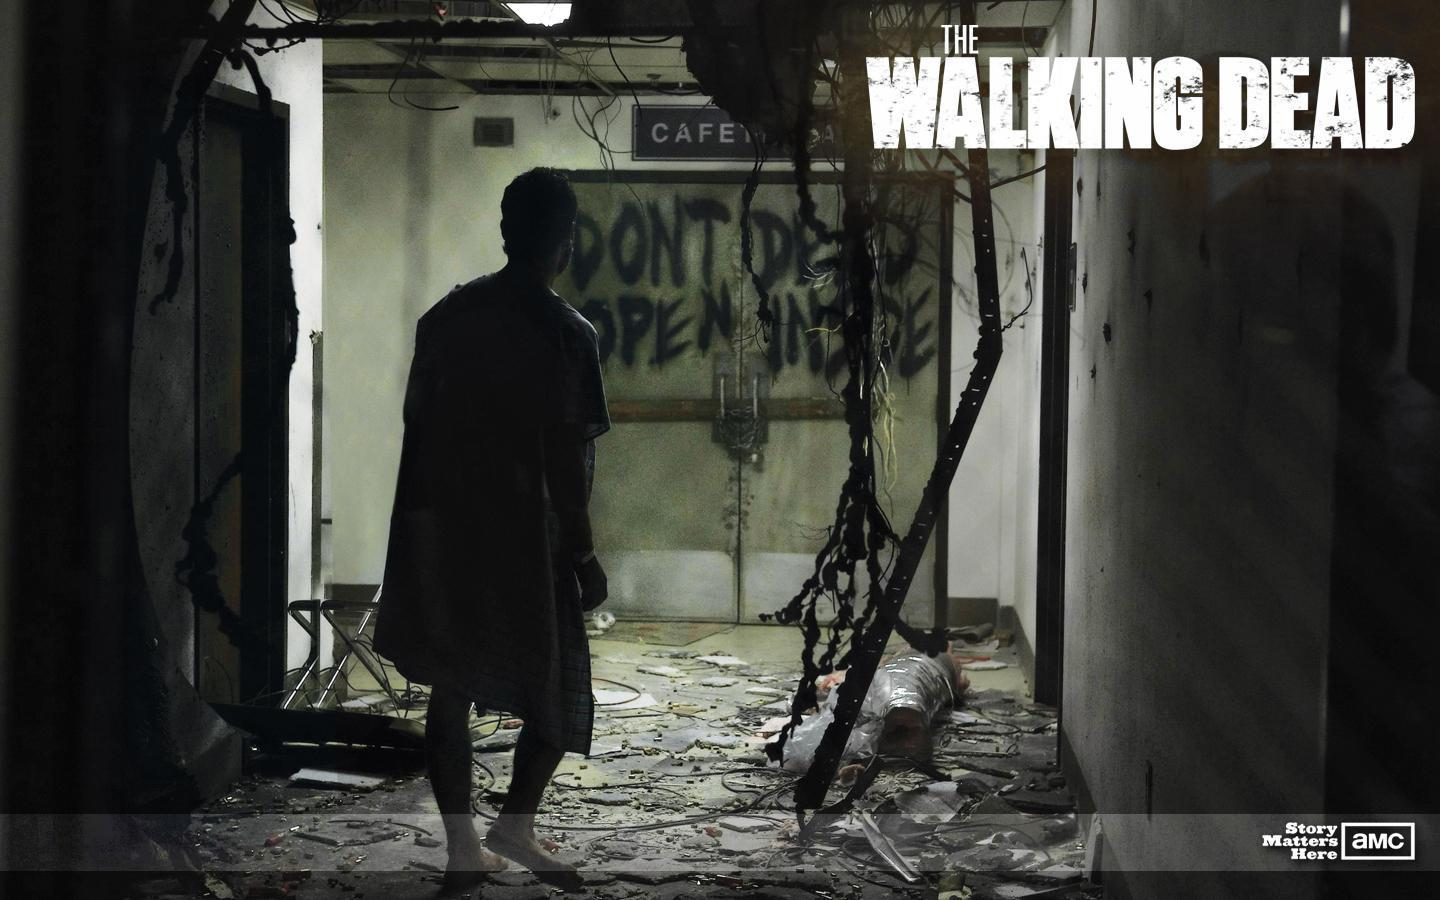 The walking dead wallpaper the walking dead 17116137 1440 900